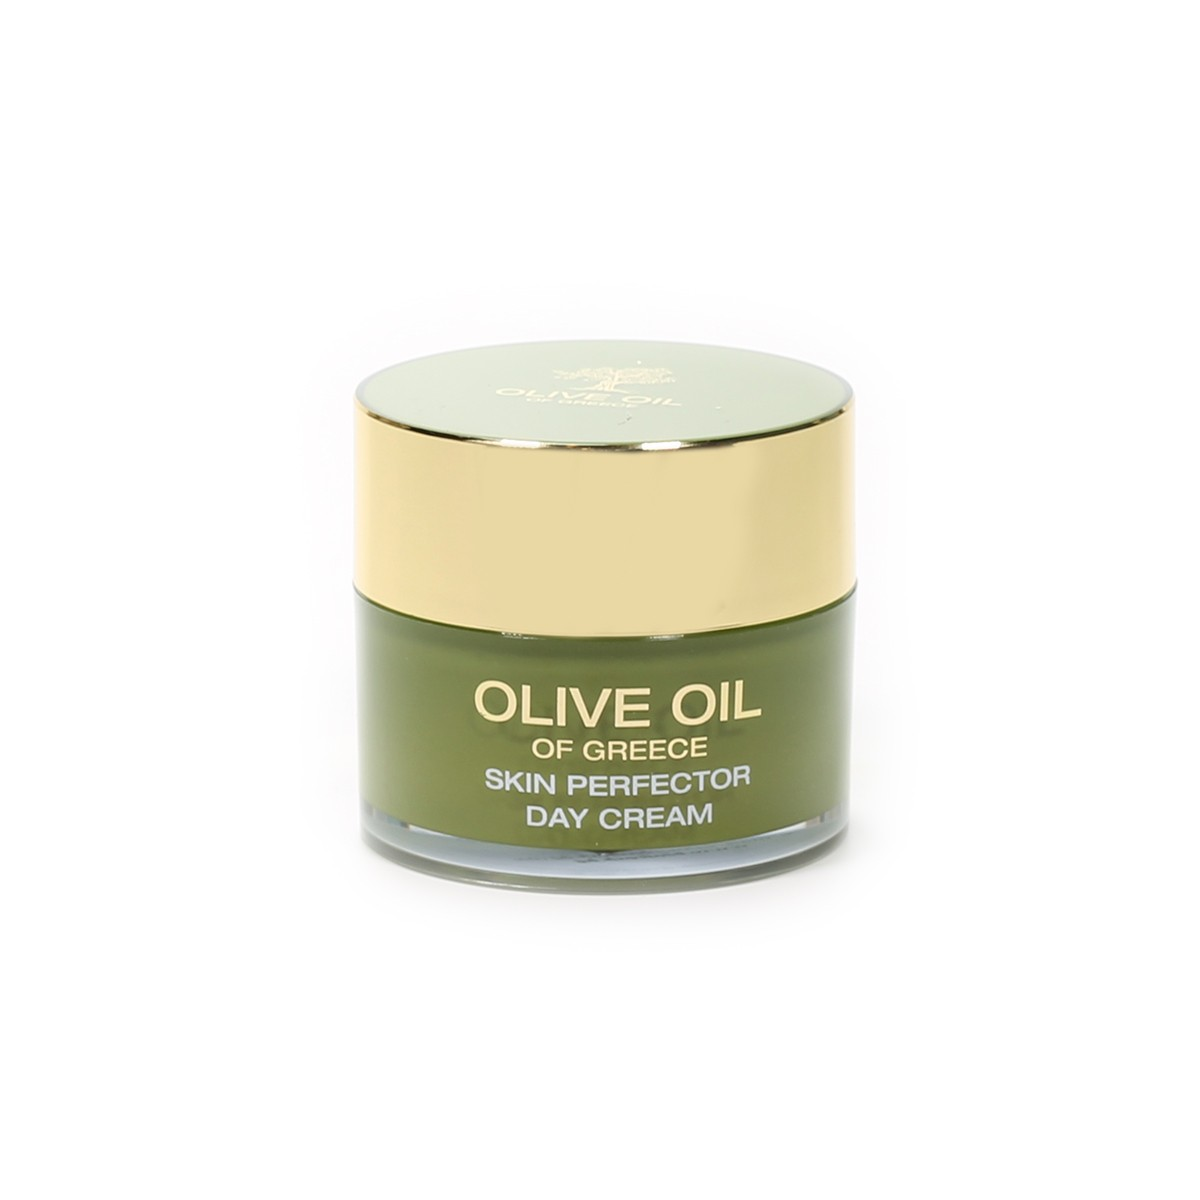 Skin Perfector day cream for normal to oily skin Olive Oil of Greece Biofresh